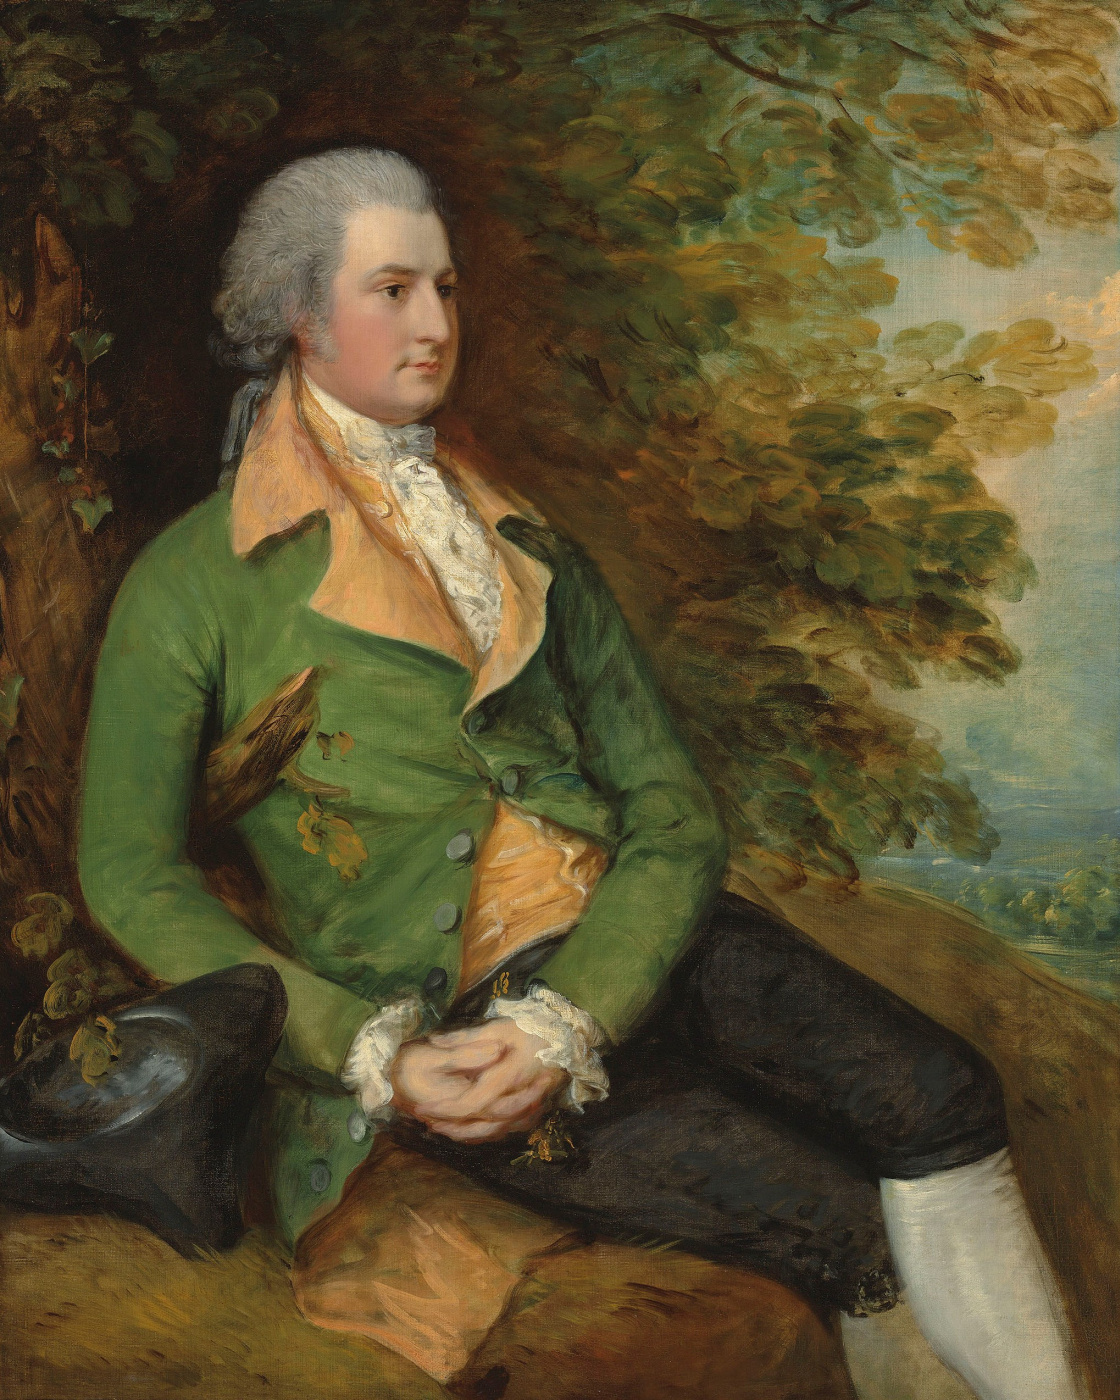 Thomas Gainsborough. Portrait of Thomas brook in a wooded landscape